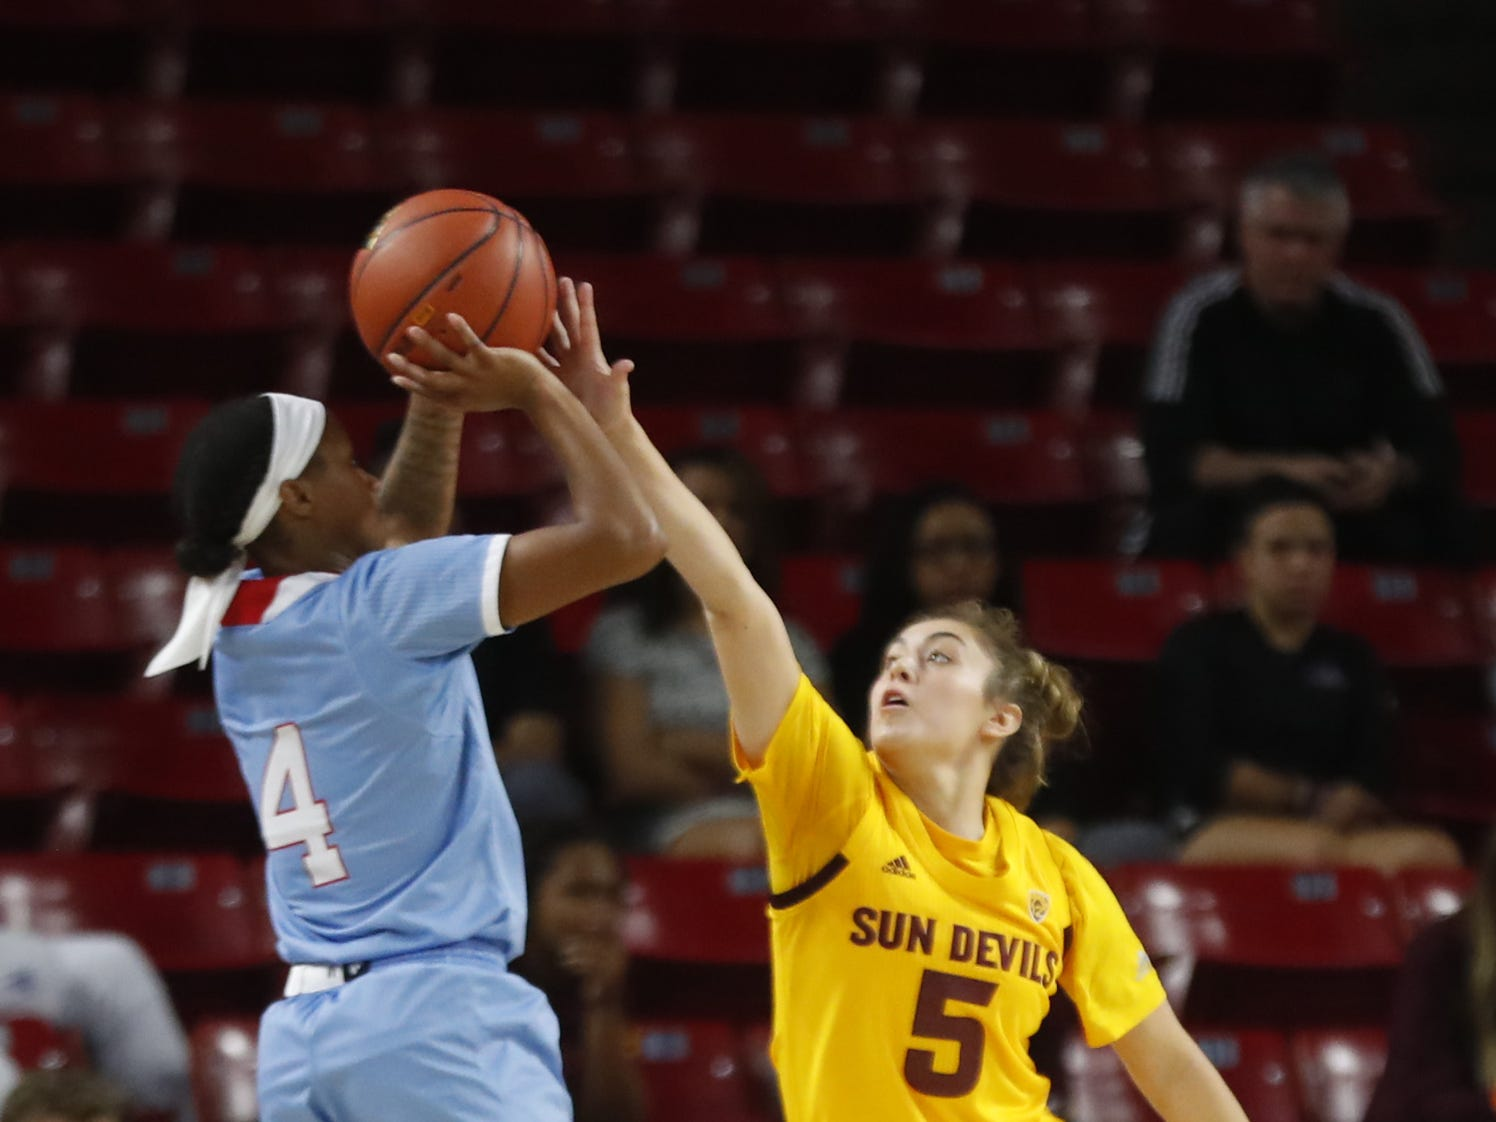 ASU's Jamie Lorea (5) blocks a shot from Louisiana Tech's Kierra Anthony (4) during the first half at Wells Fargo Arena in Tempe, Ariz. on November 30, 2018.